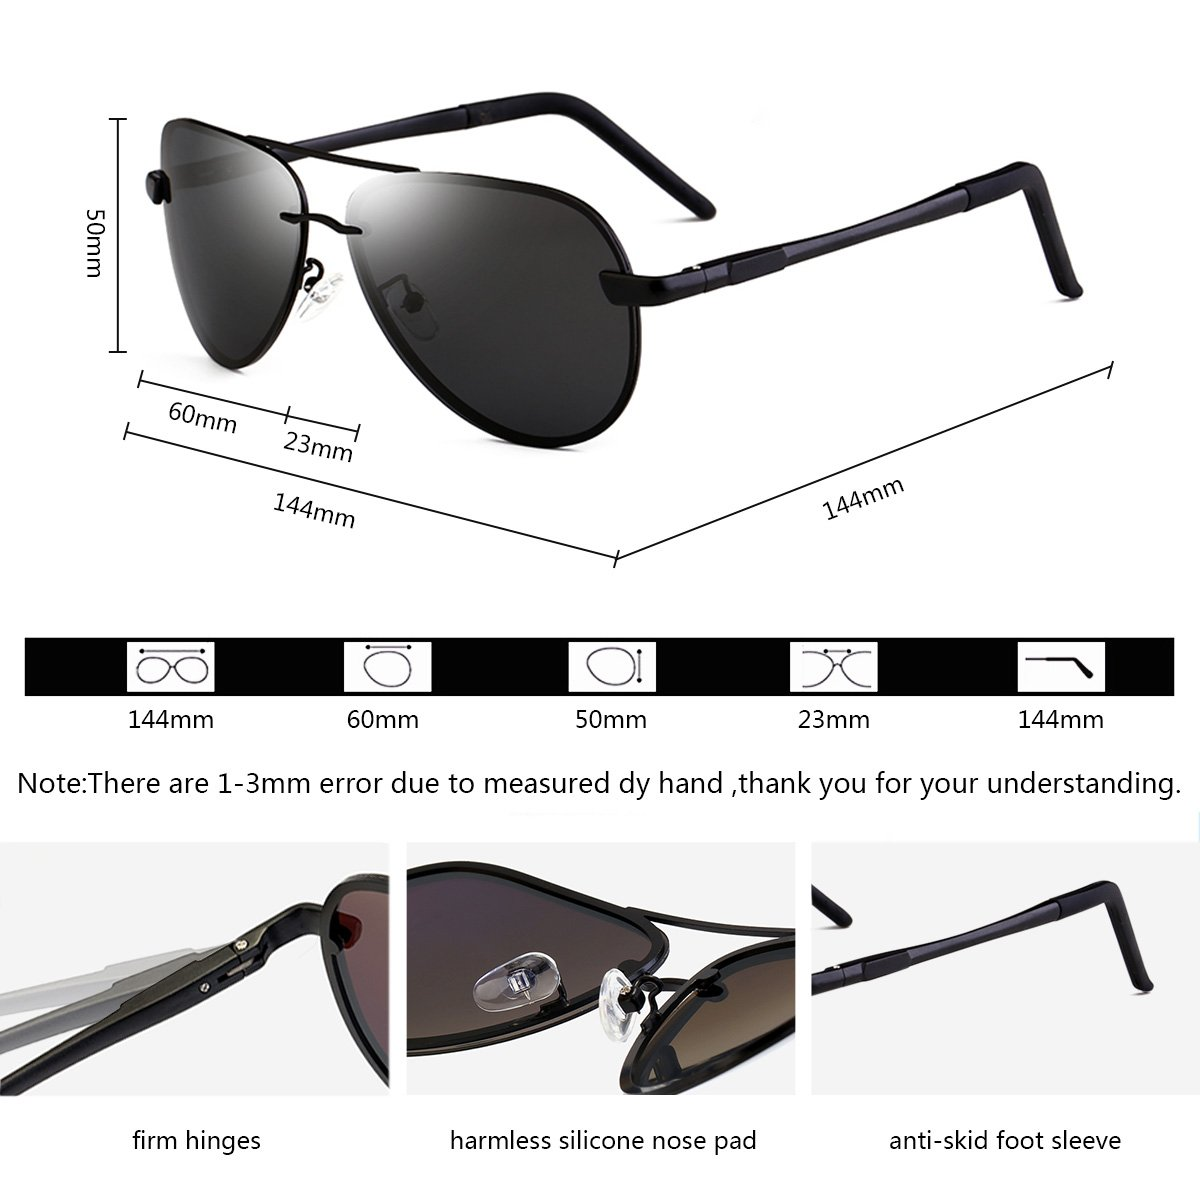 Aviator Sunglasses WISH CLUB polarized sunglasses Men\'s Retro Designer Shades UV400 Lens Outdoor Unisex Sun Glasses